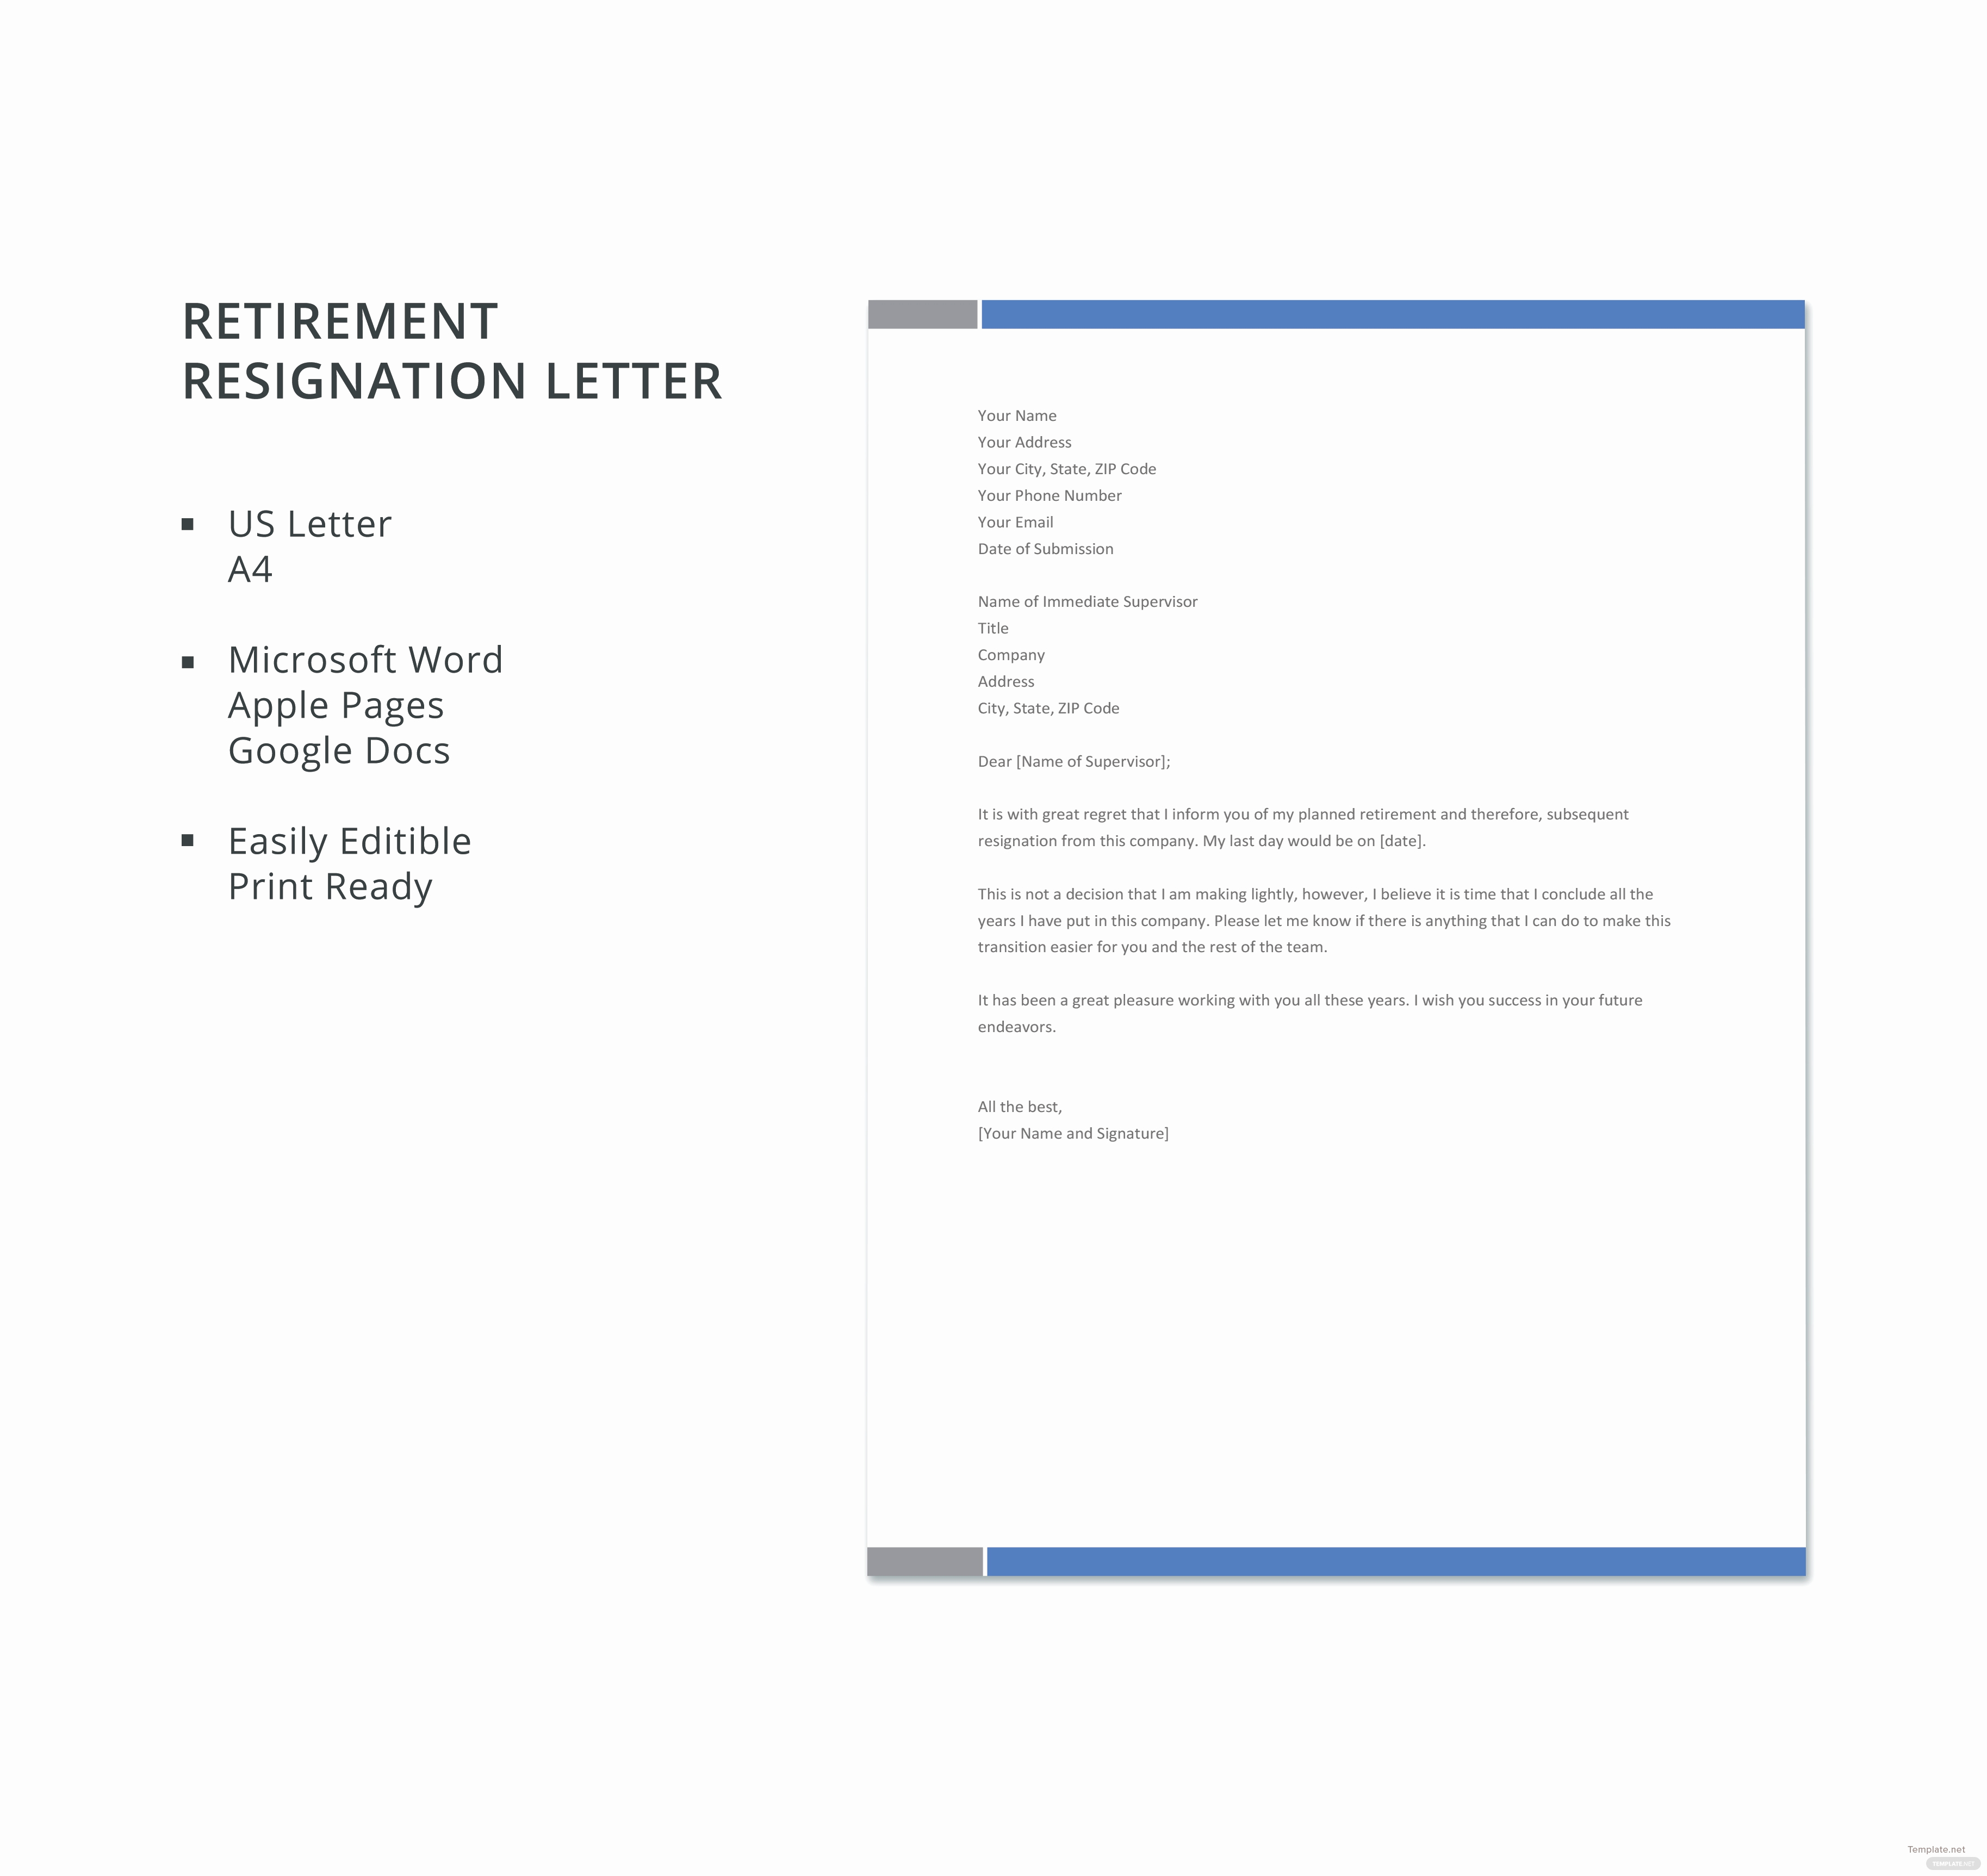 Microsoft Word Letter Template Unique Free Retirement Resignation Letter Template In Microsoft